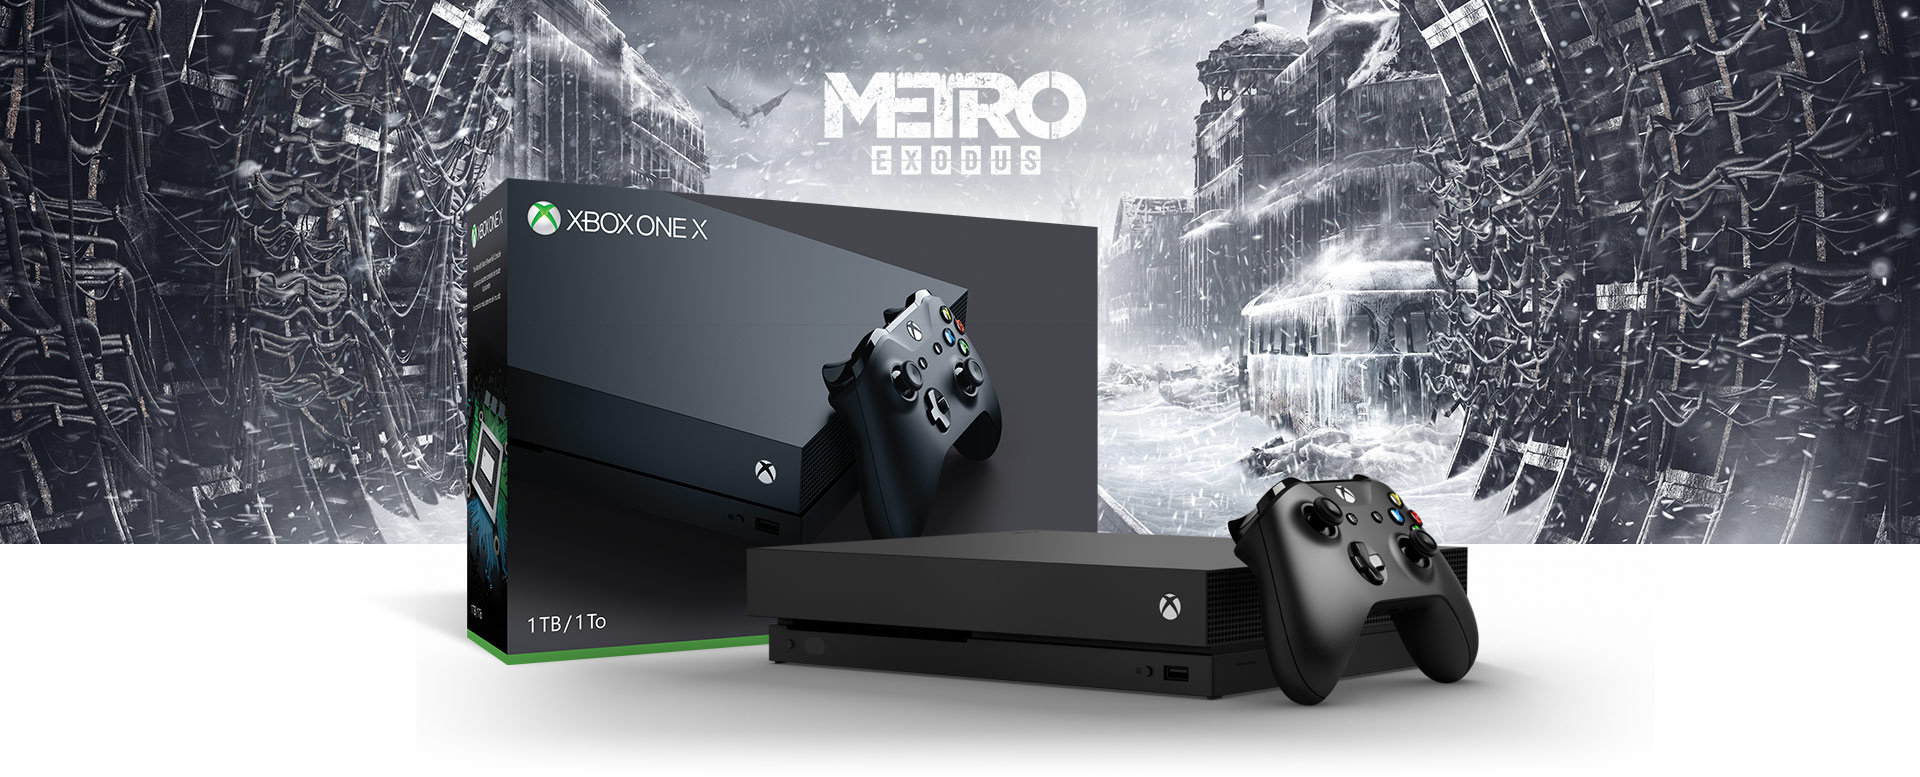 Xbox One X console in front of a hardware bundle box featuring Metro Exodus art